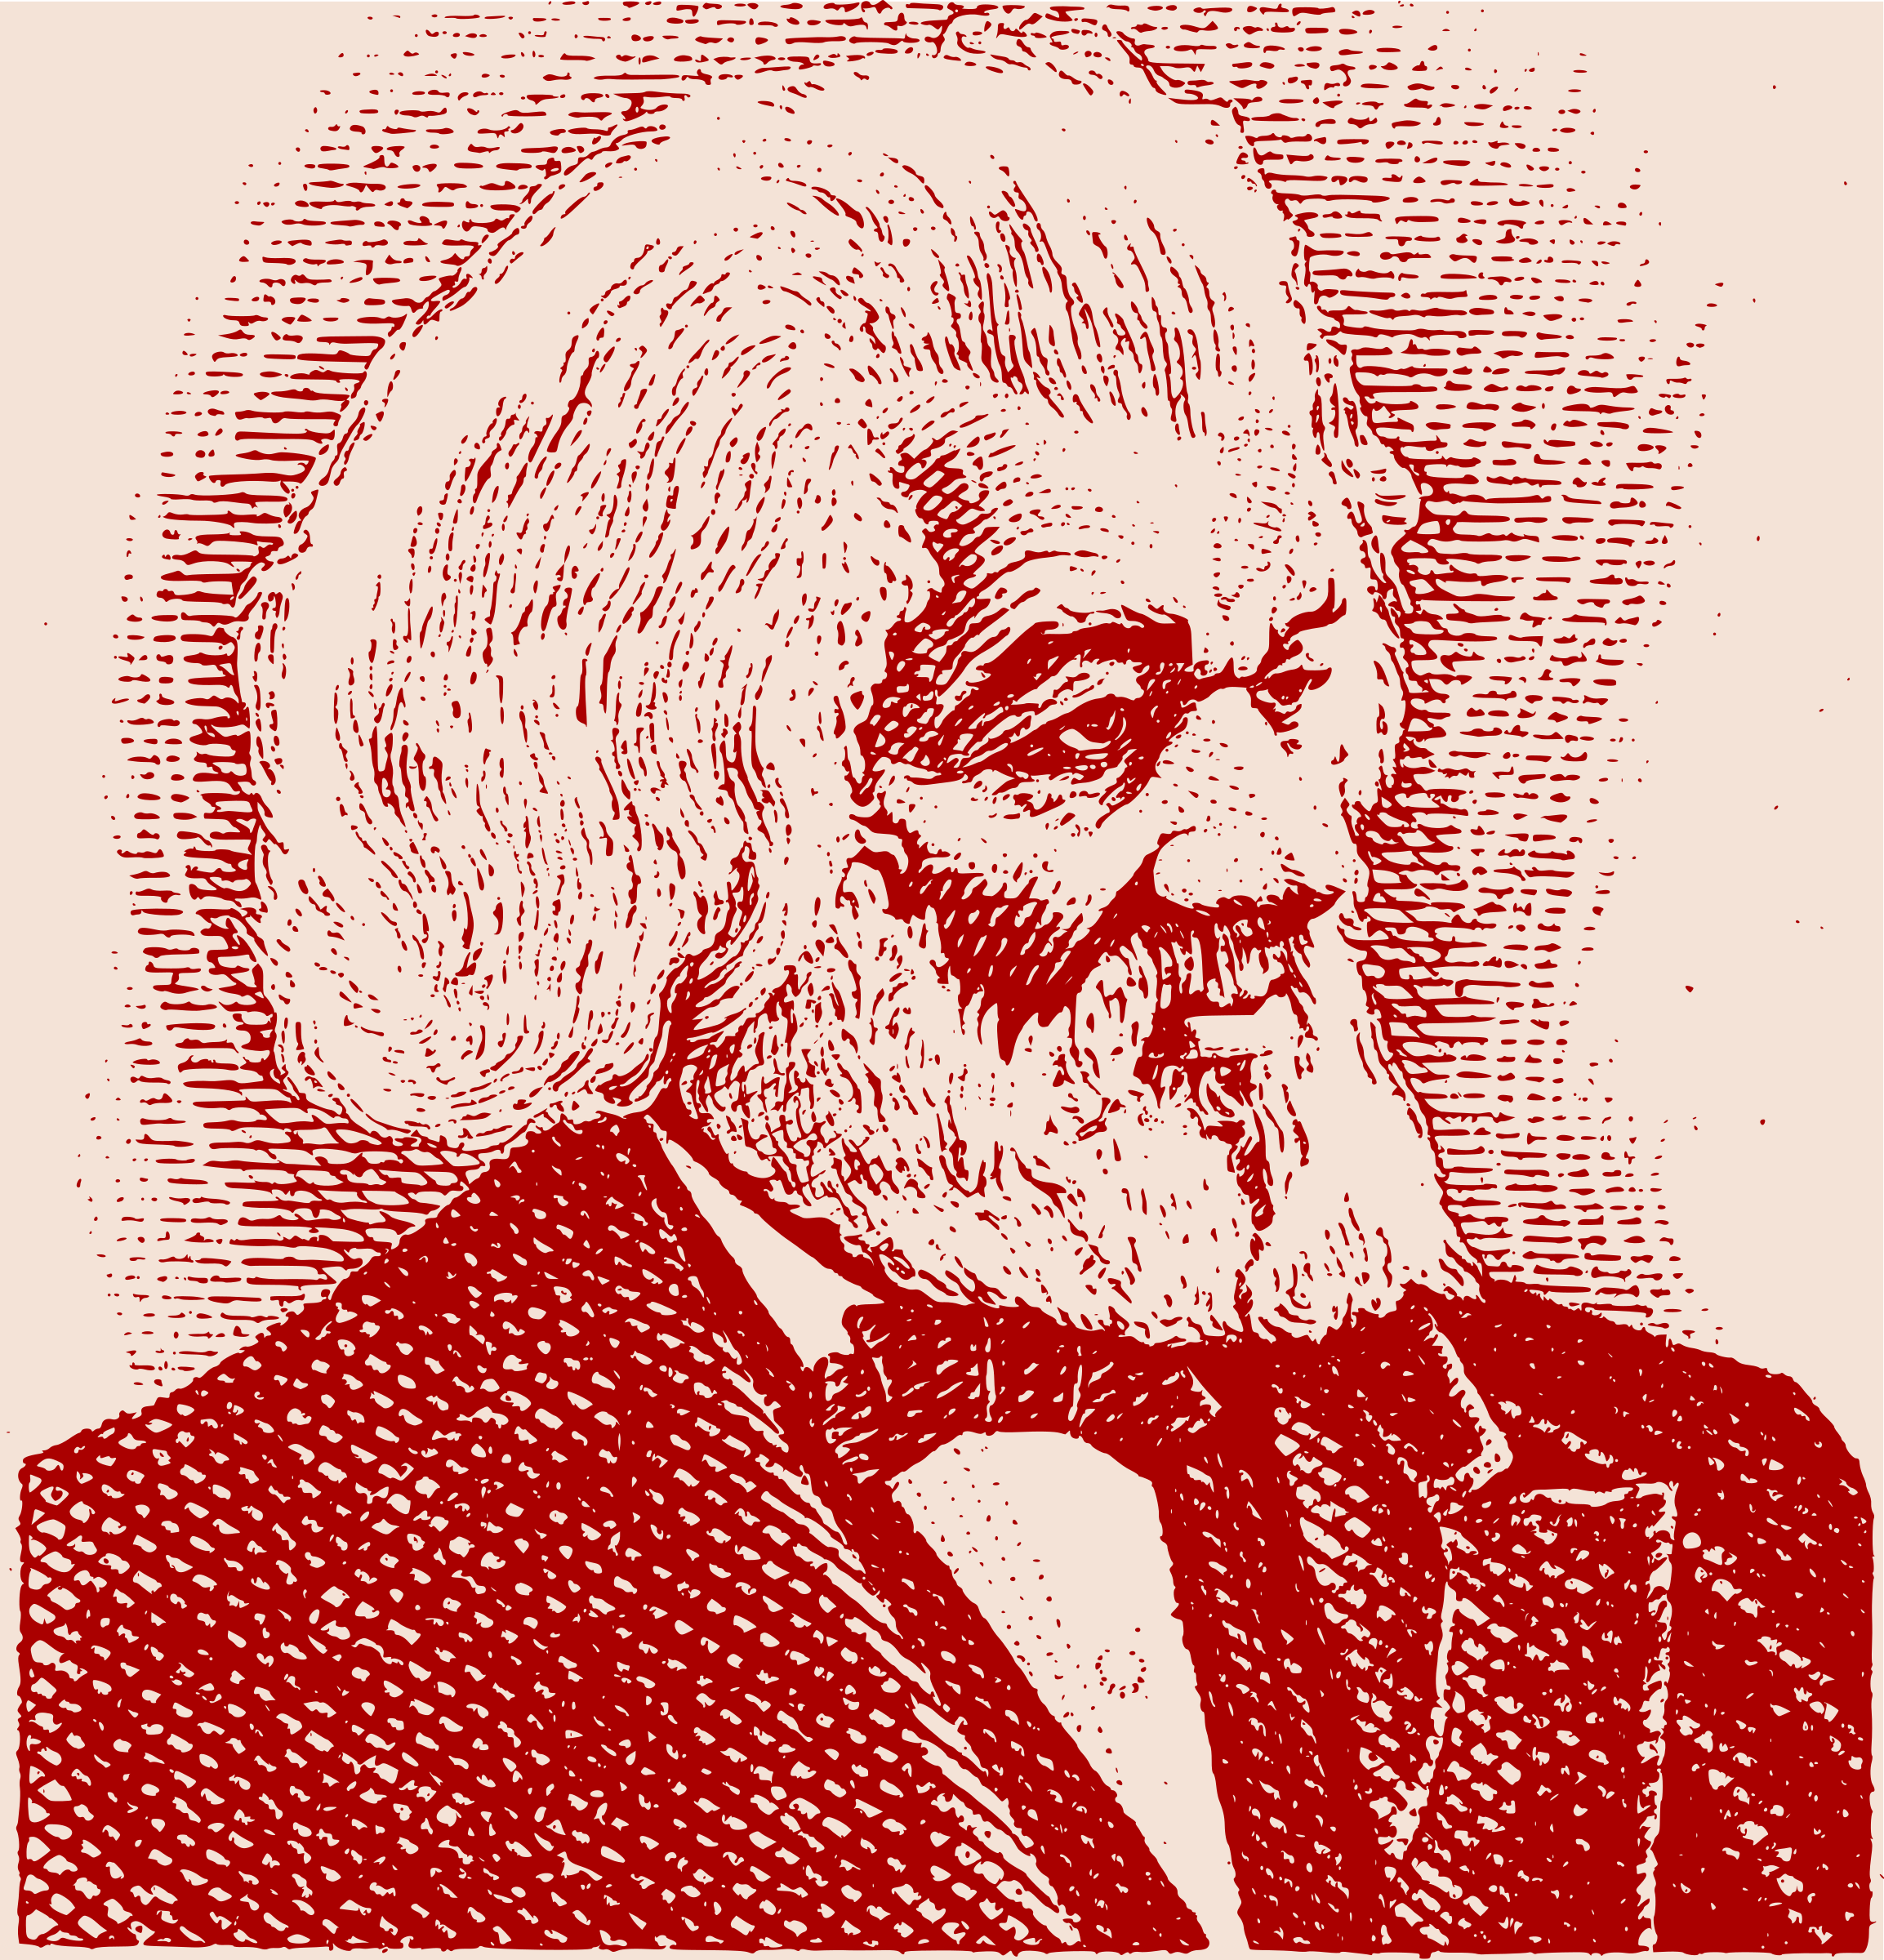 Frederick Douglass by j4p4n